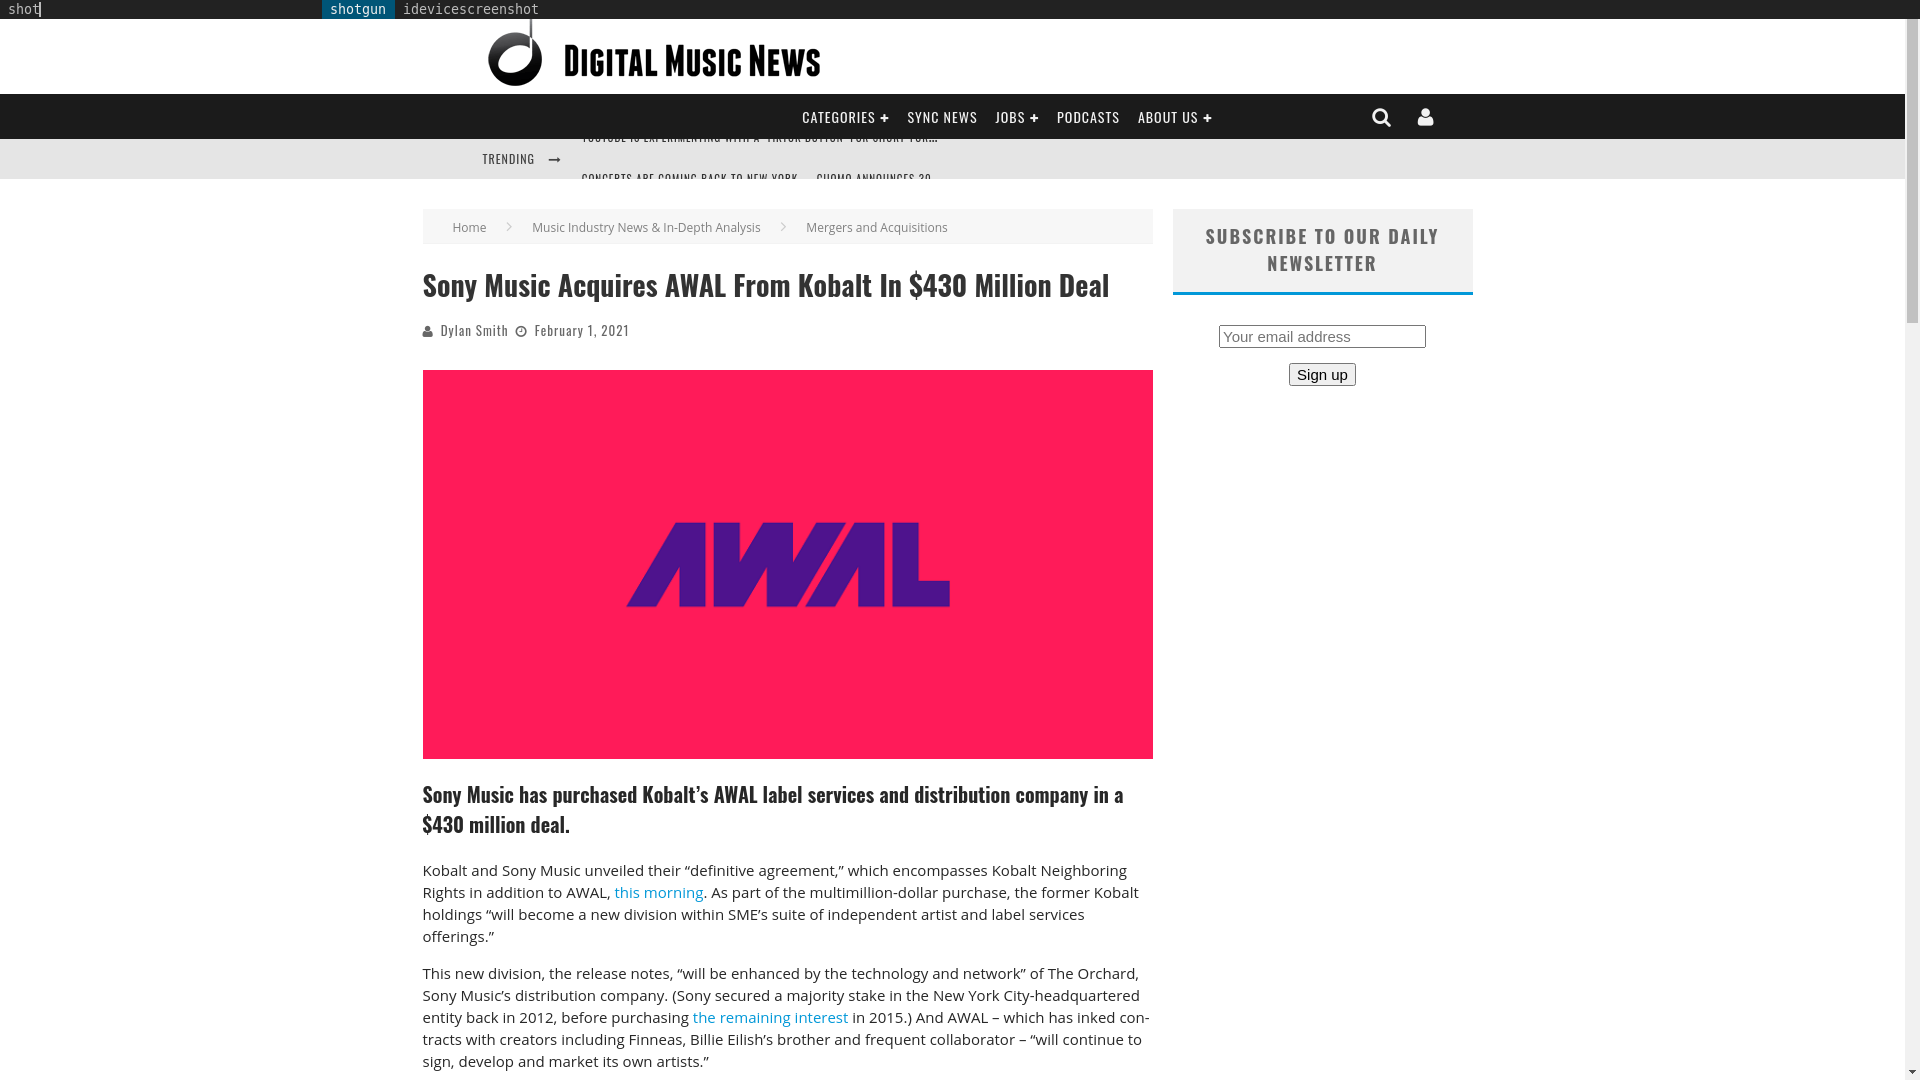 Fairness Rocks News Sony Music Acquires AWAL From Kobalt In $430 Million Deal